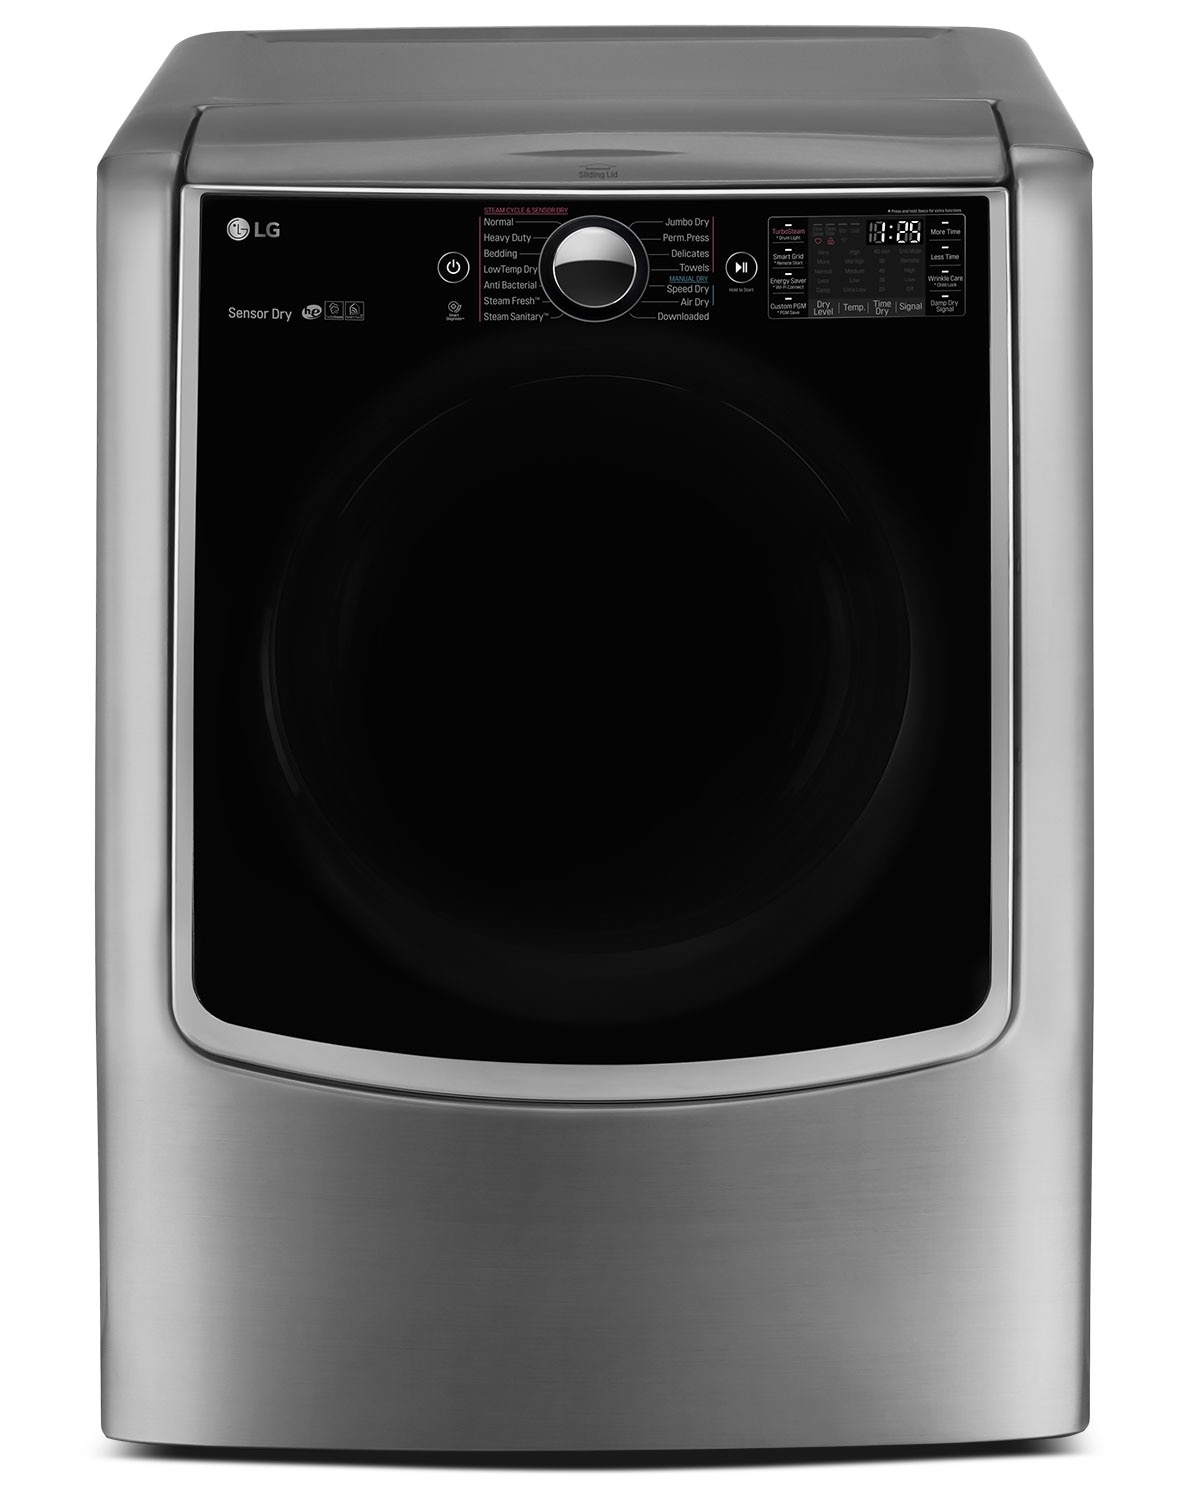 Washers and Dryers - LG 9.0 Cu. Ft. Mega Capacity Electric Steam Dryer – Graphite Steel